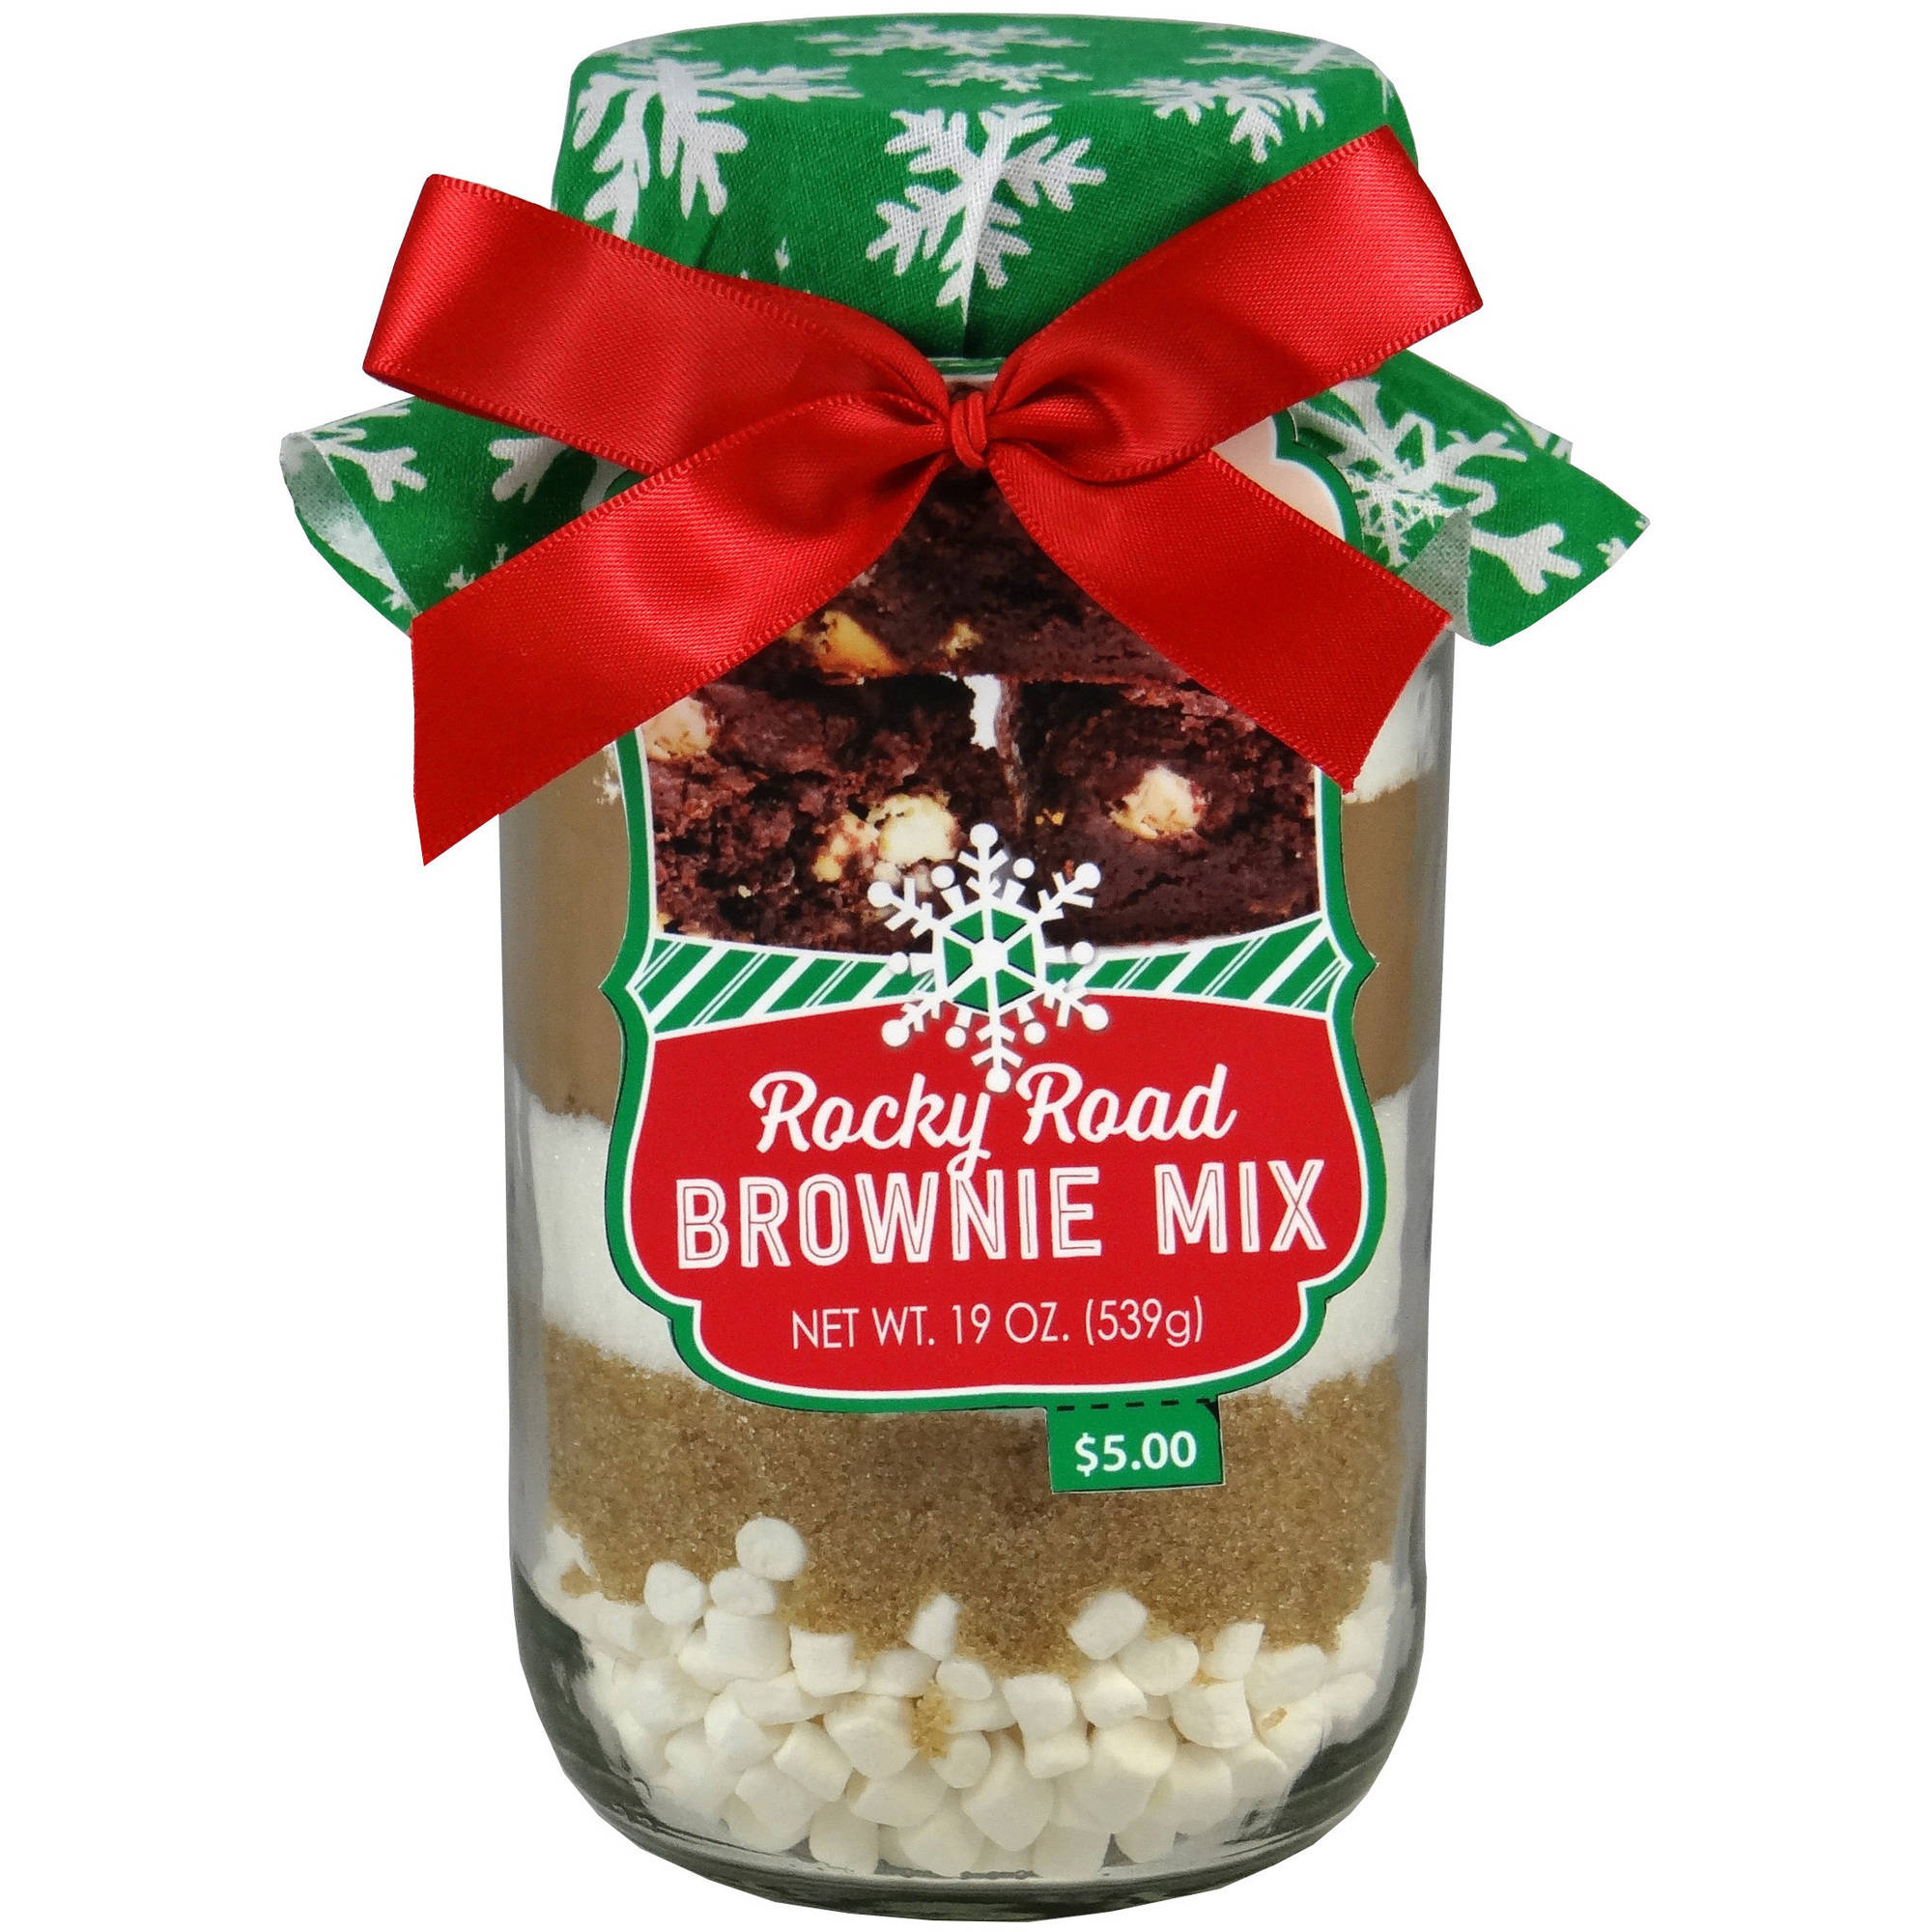 Holiday Baking Mix in a Jar, Rocky Road Flavor, 19 oz